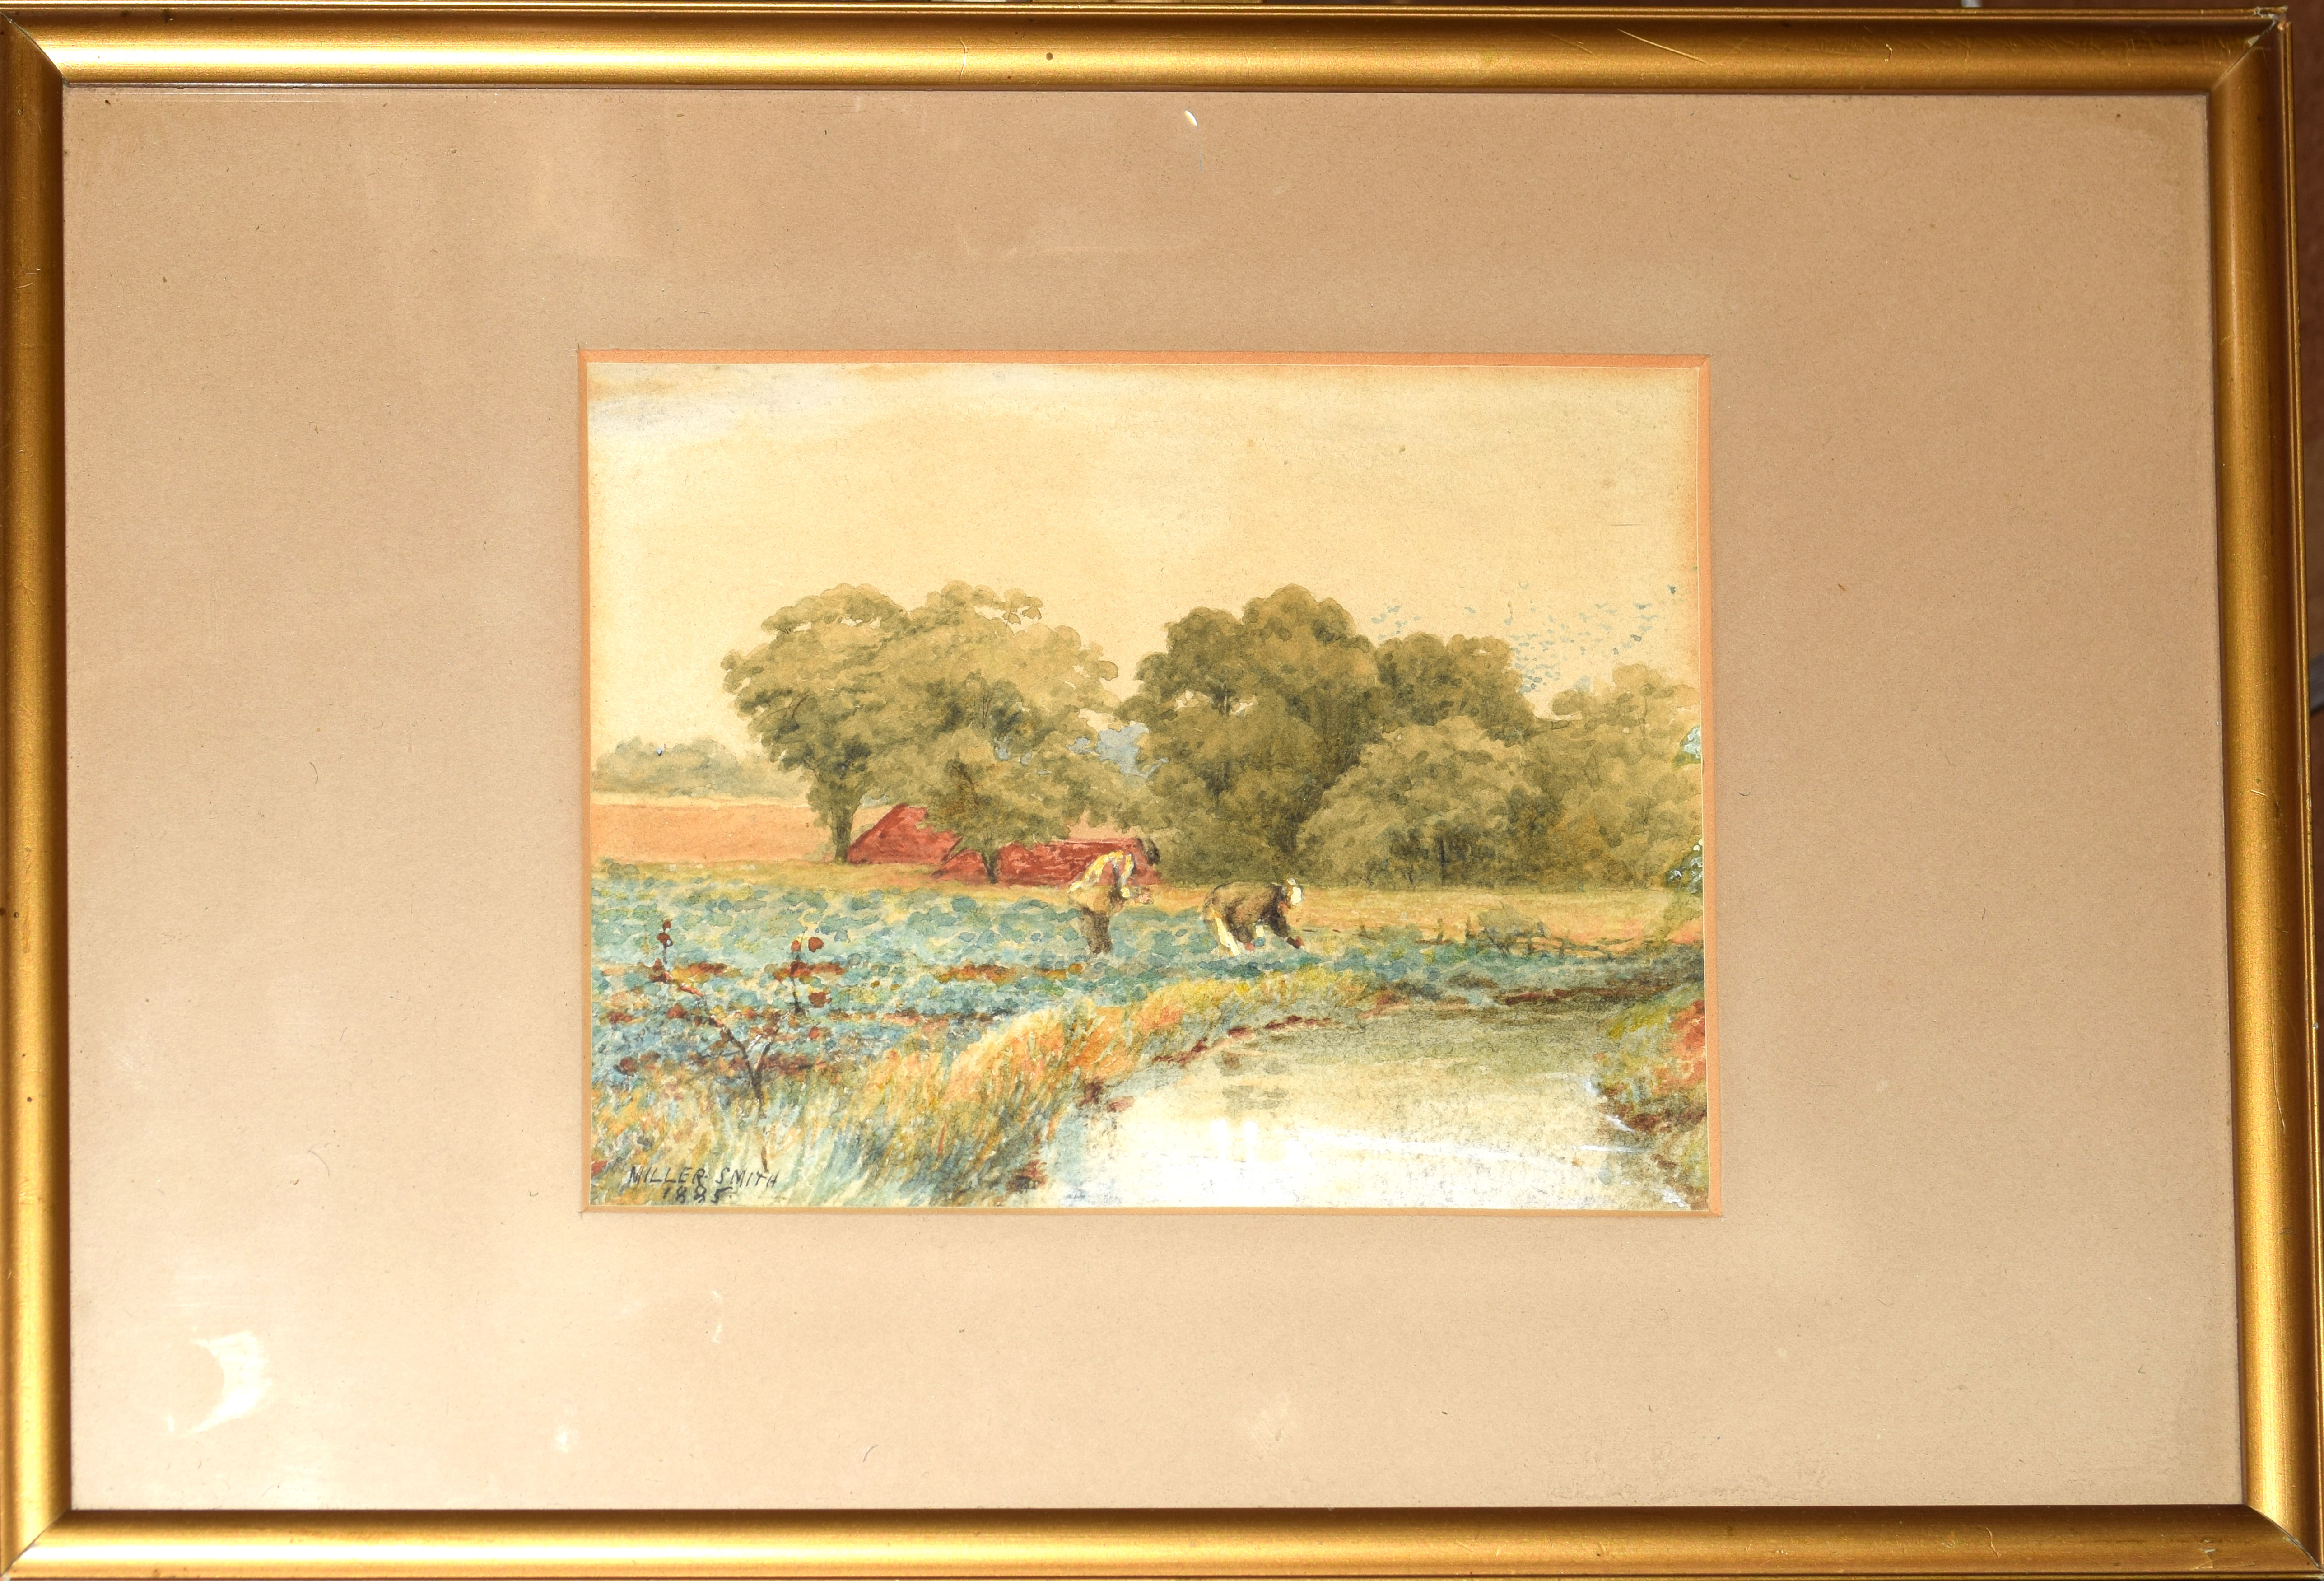 Miller Smith, River landscape with figures, watercolour, signed and dated 1885 lower left, 13 x